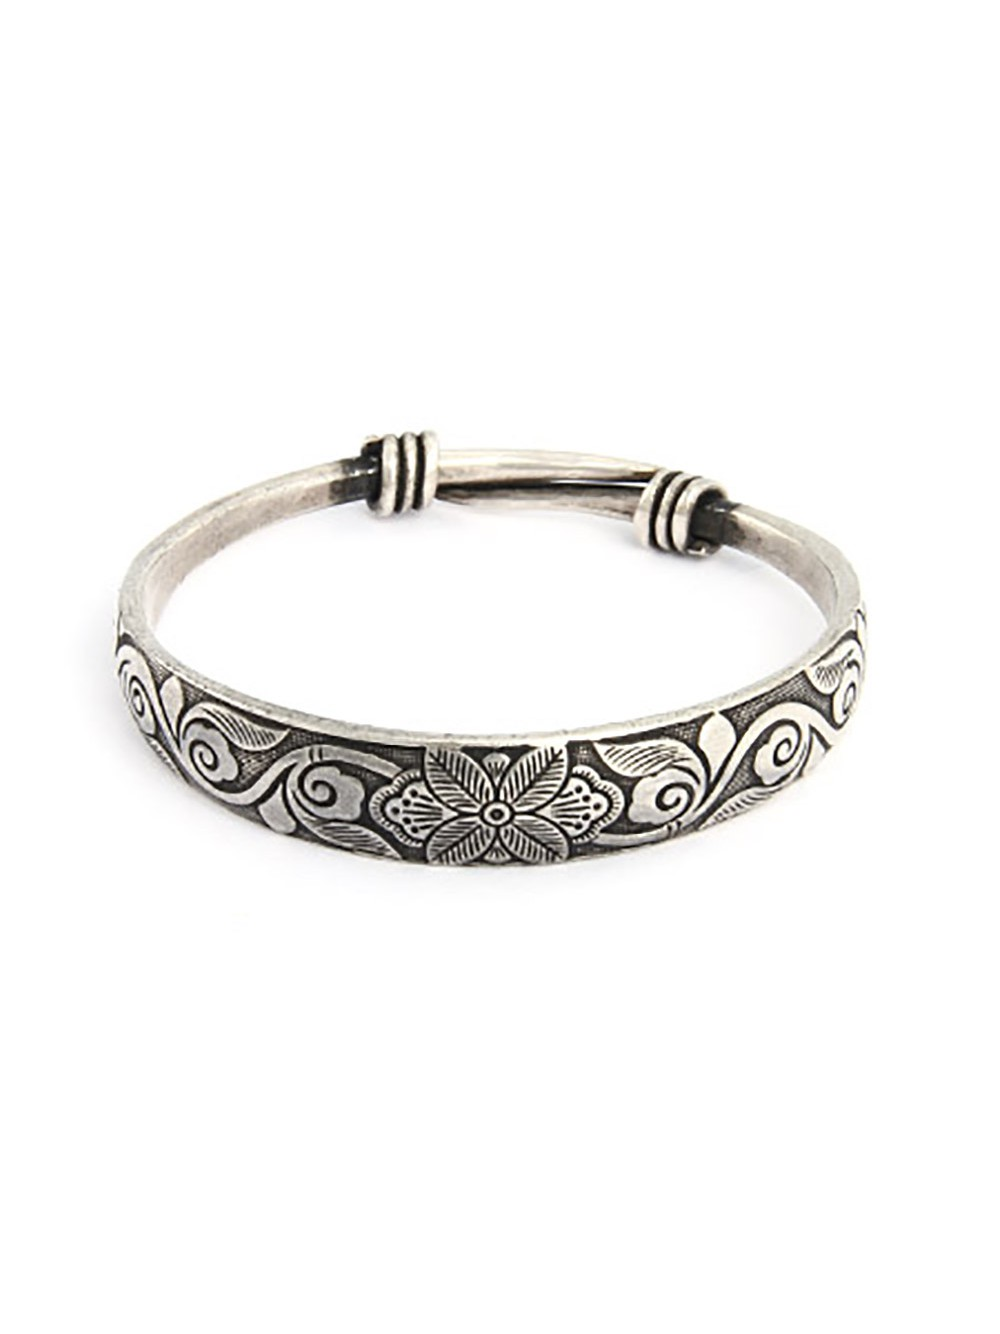 Silver Flower Bangle Silver Bangle Agapanthus Flower Of Love Isles of Scilly Botanical Jewellery Made In Cornwall |Easter gift